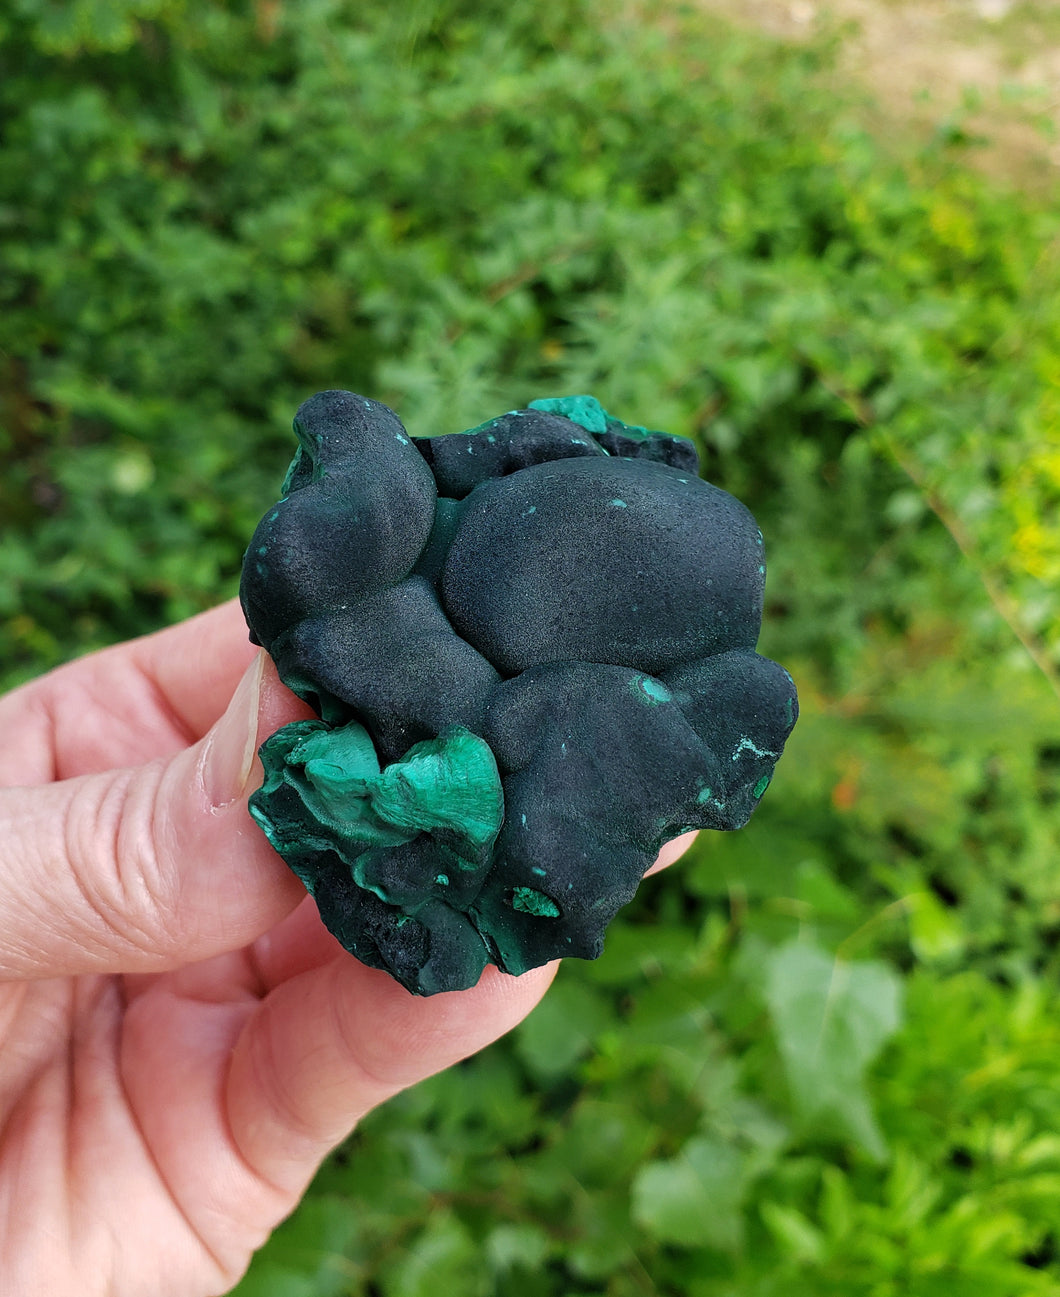 Malachite from Guangdong Province in China